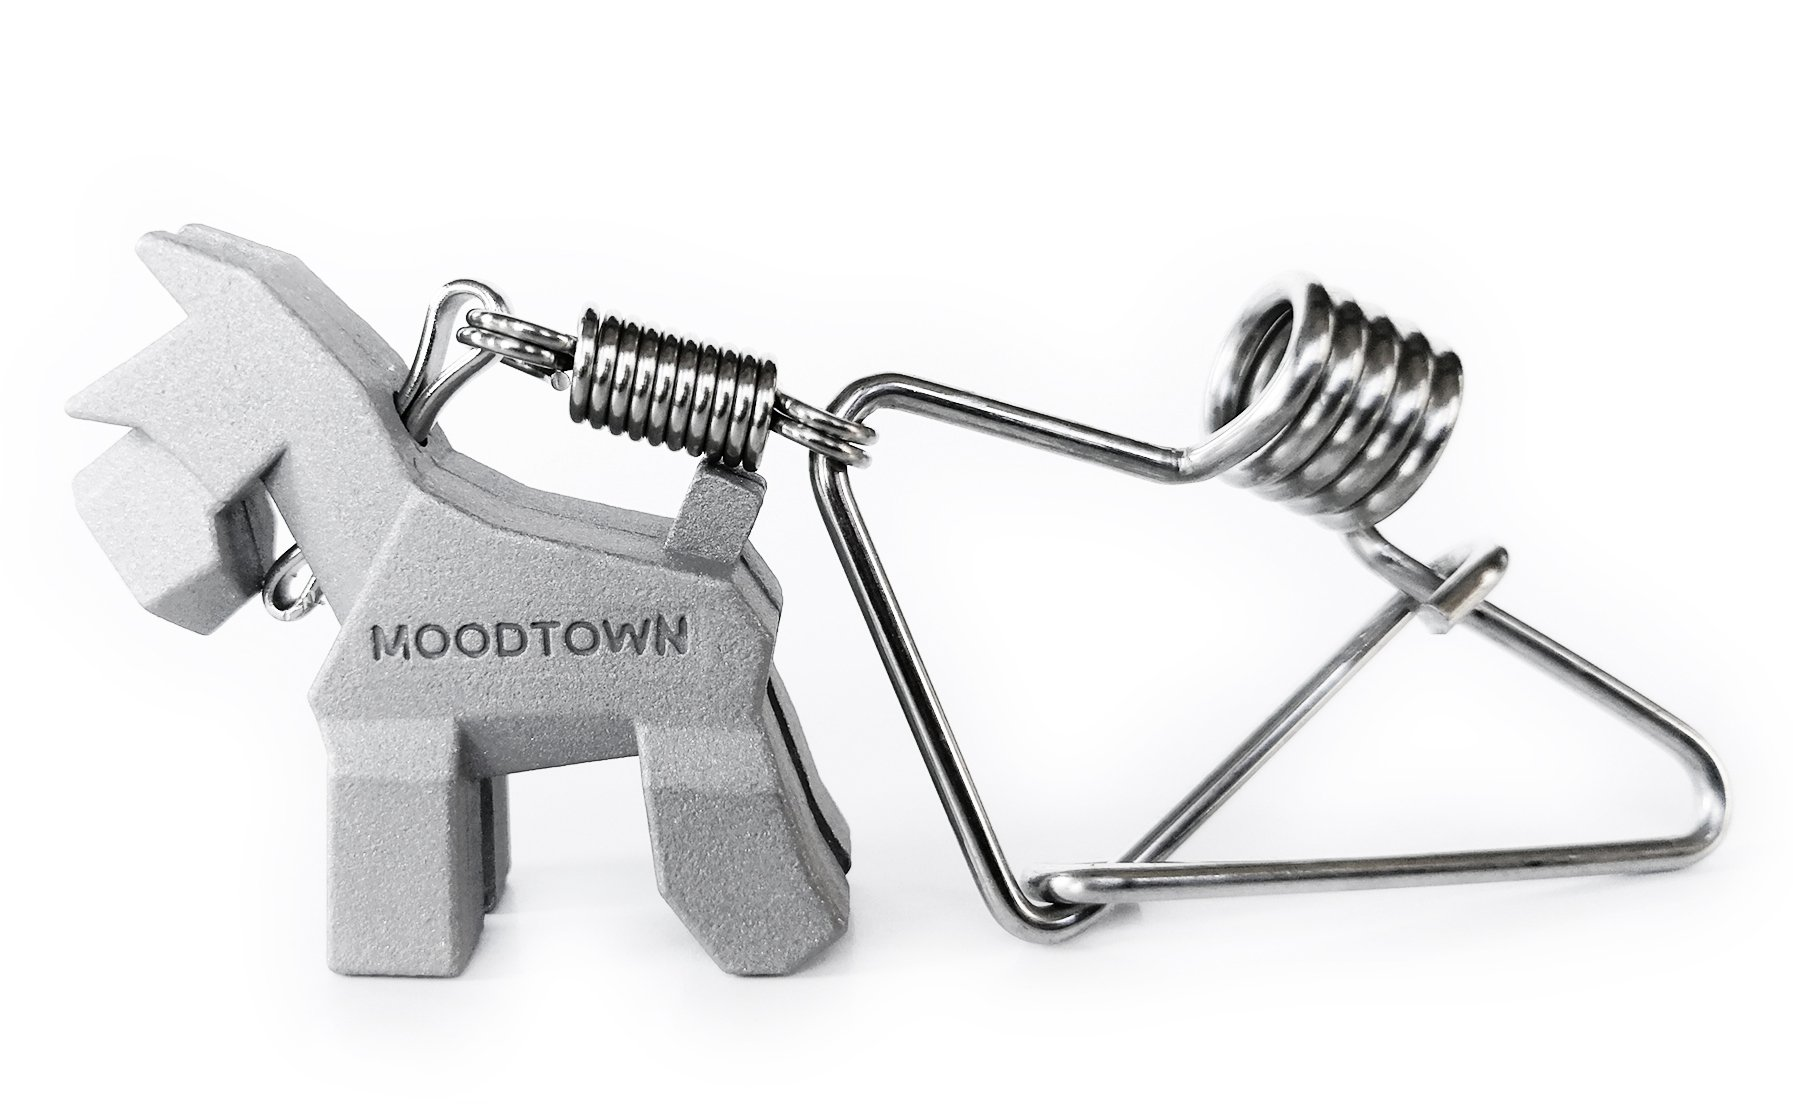 MOODTOWN Handcrafted Stainless Steel Dog Keychain Gift for Men and Women- Schnauzer Puppy Car Keyring Car Rear View Mirror Hanging Accessory